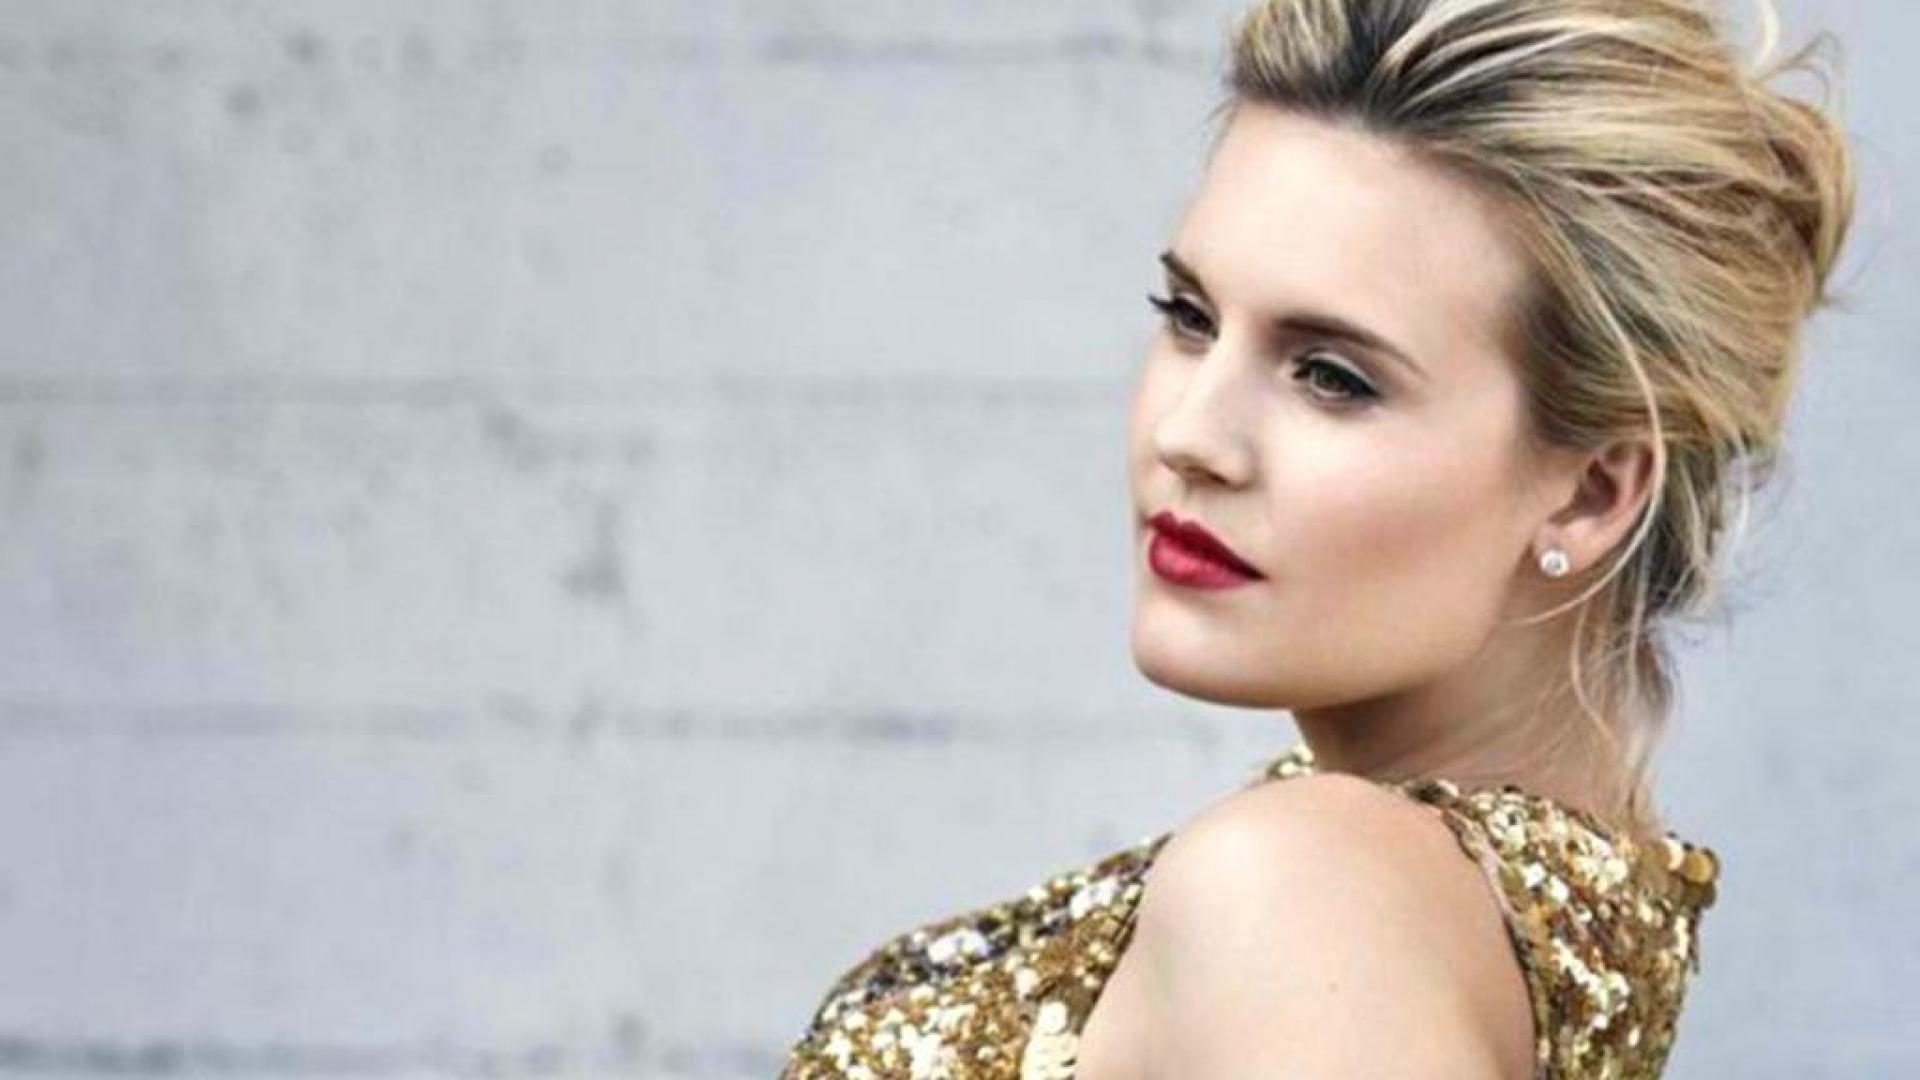 Maggie Grace wallpaper | 1920x1080 | #77187